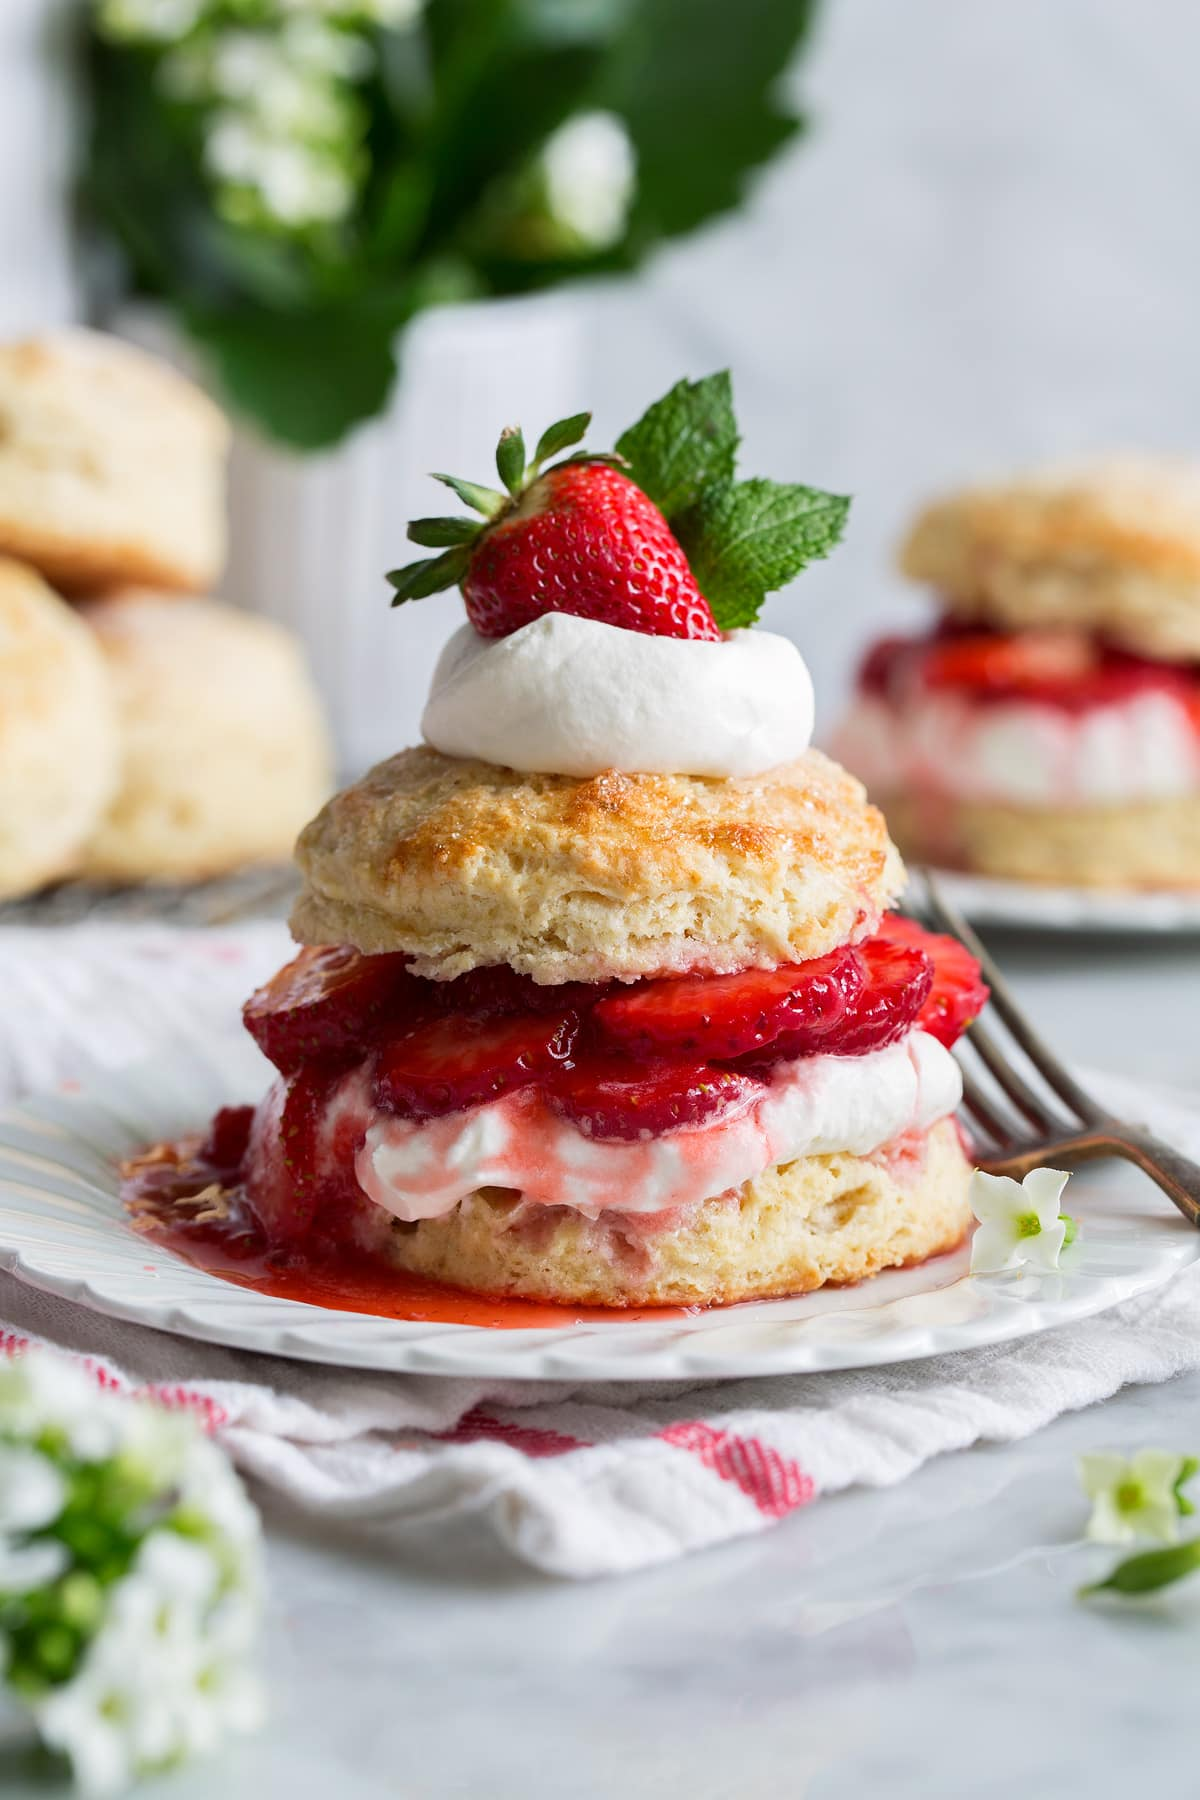 strawberry-shortcake-02.jpg